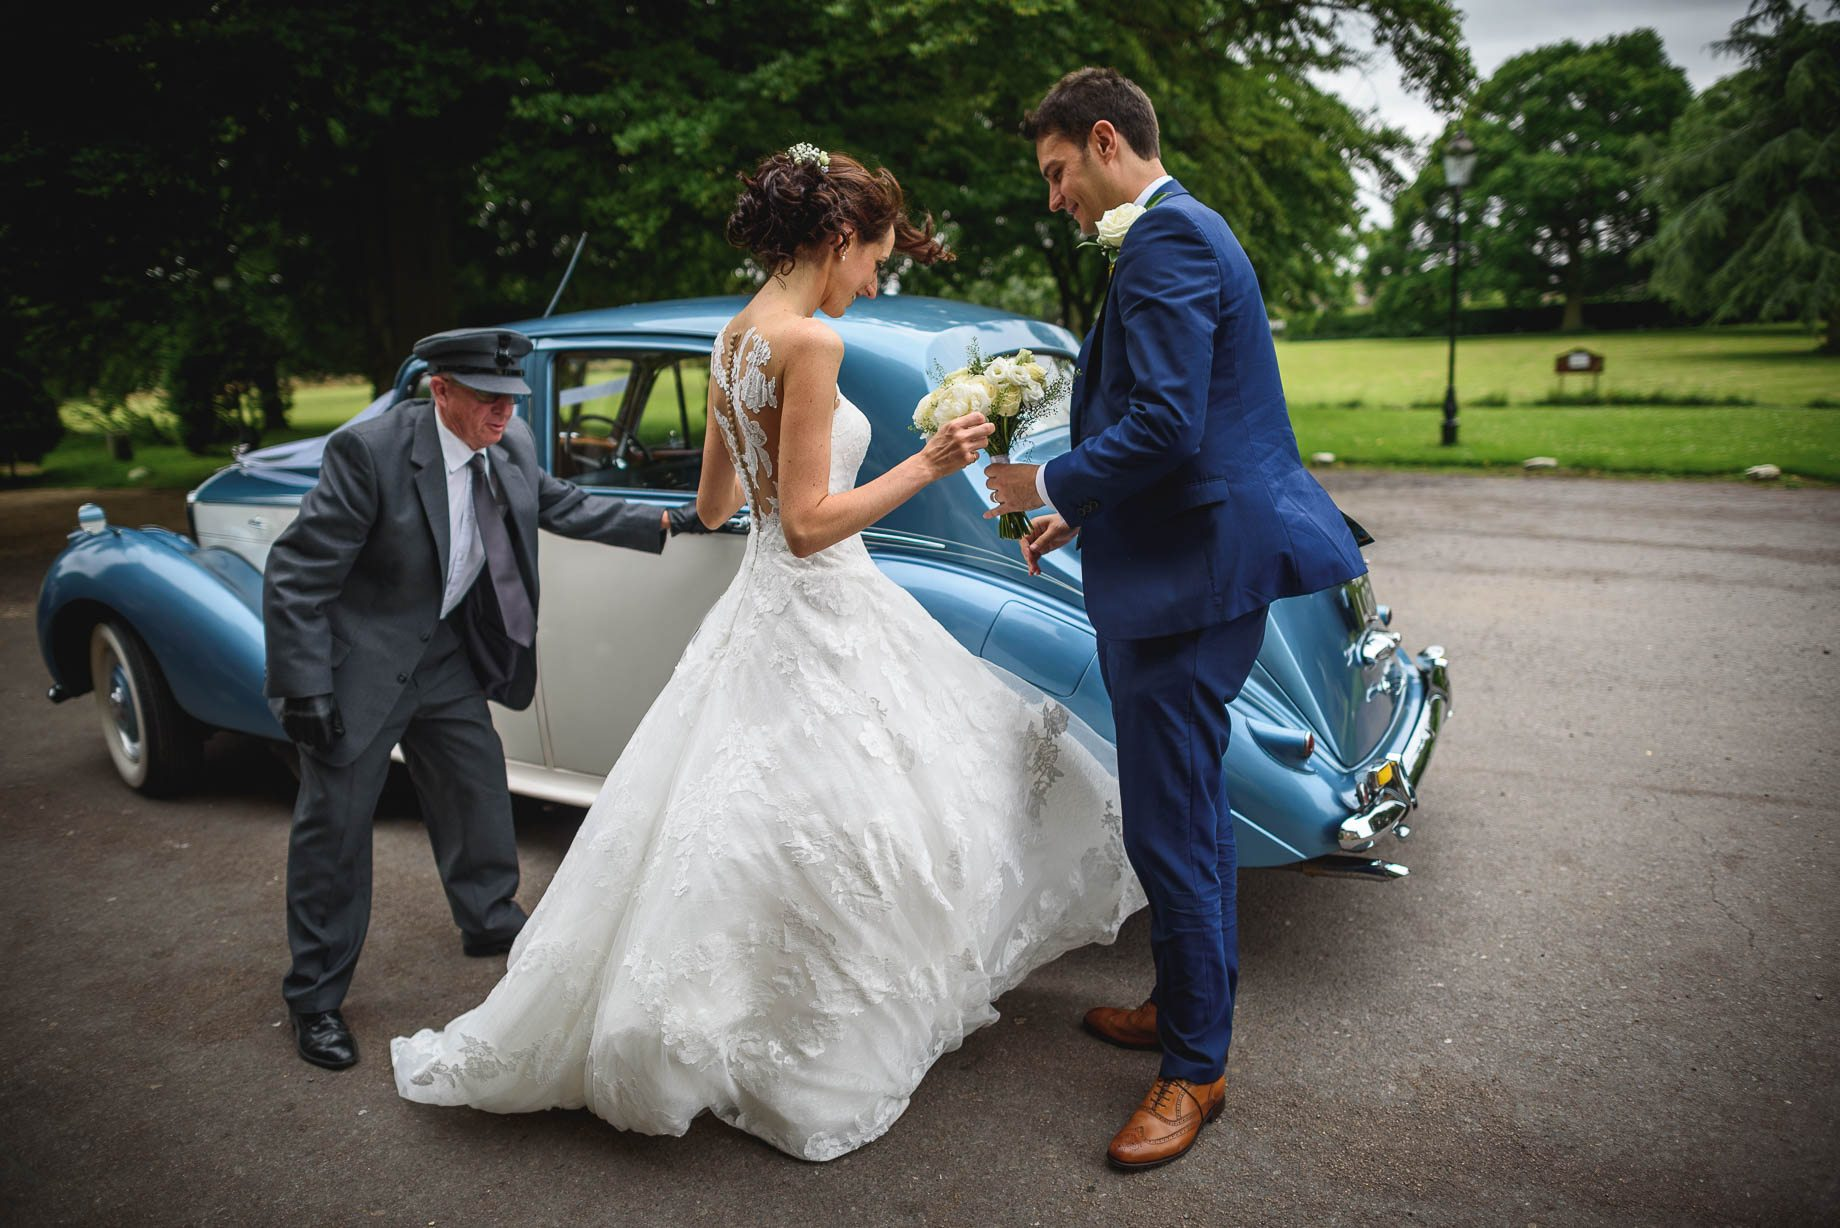 Hertfordshire wedding photography - Sarah and Stephen by Guy Collier Photography (86 of 161)